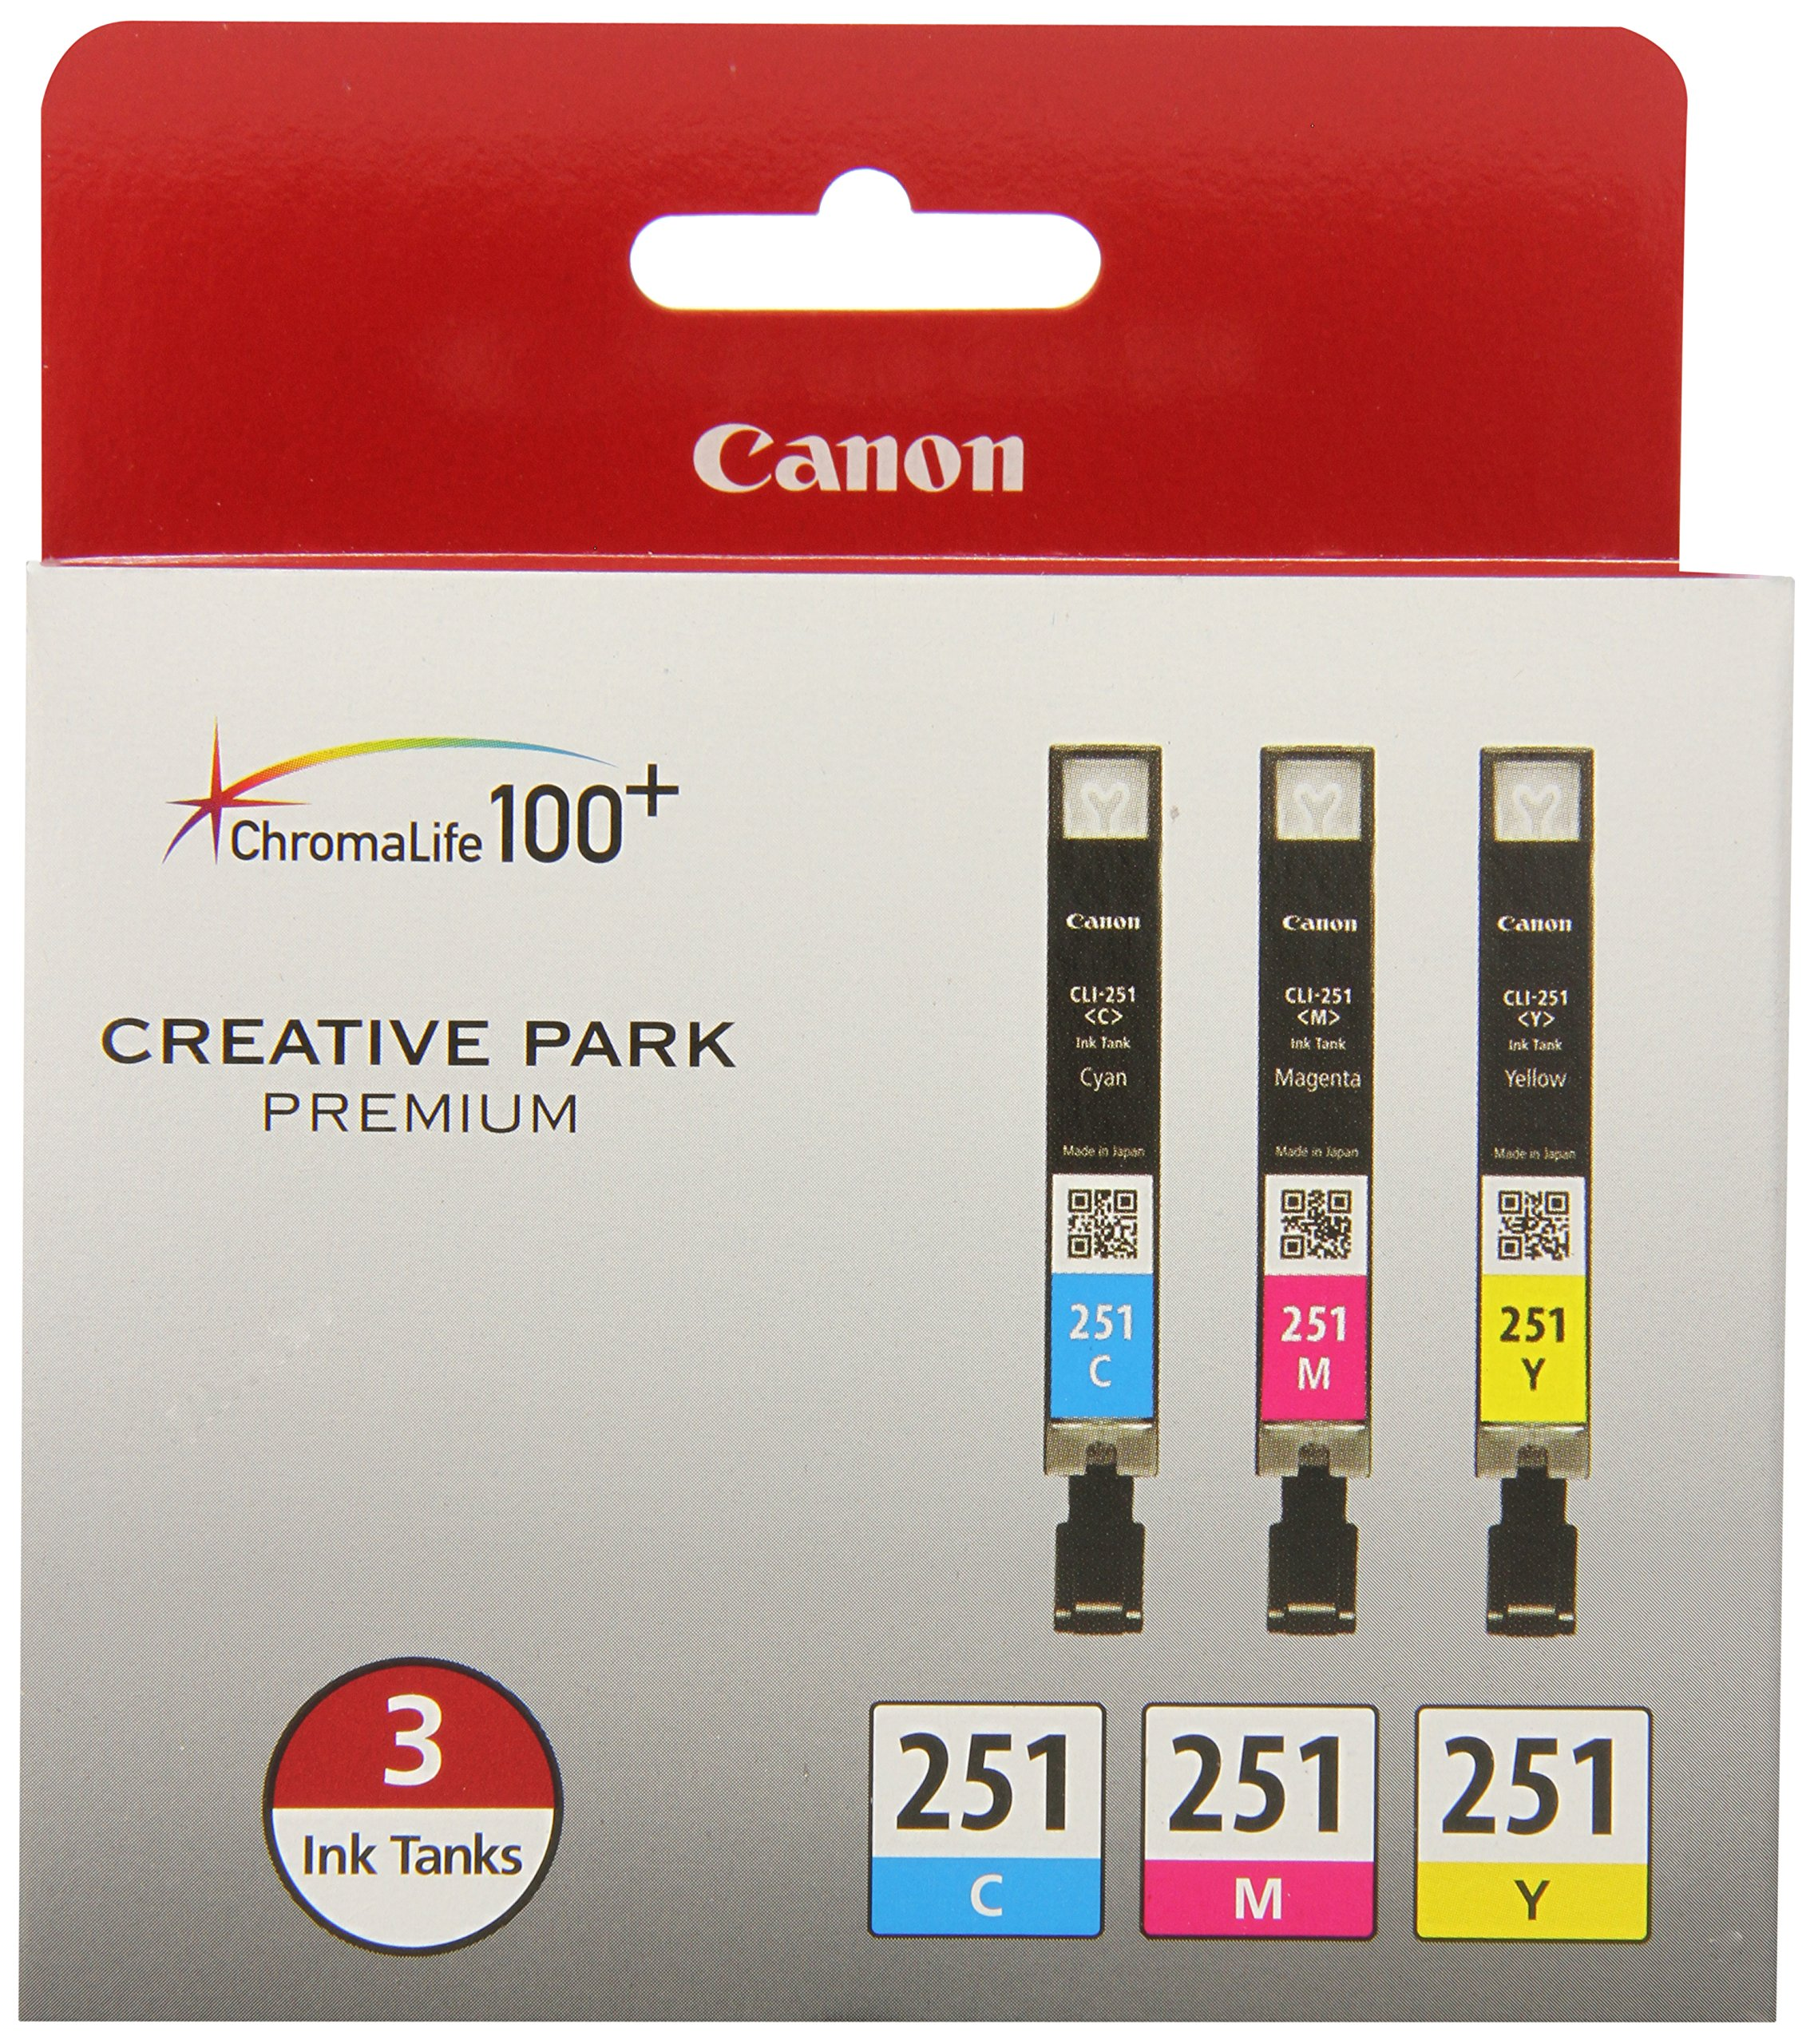 Canon CLI-251 CYAN,MAGENTA,YELLOW Ink, Compatible to MX922,MG7520,MG7120,MG6620,MG5620,iP8720,MG6420,MG6320 and MG5420